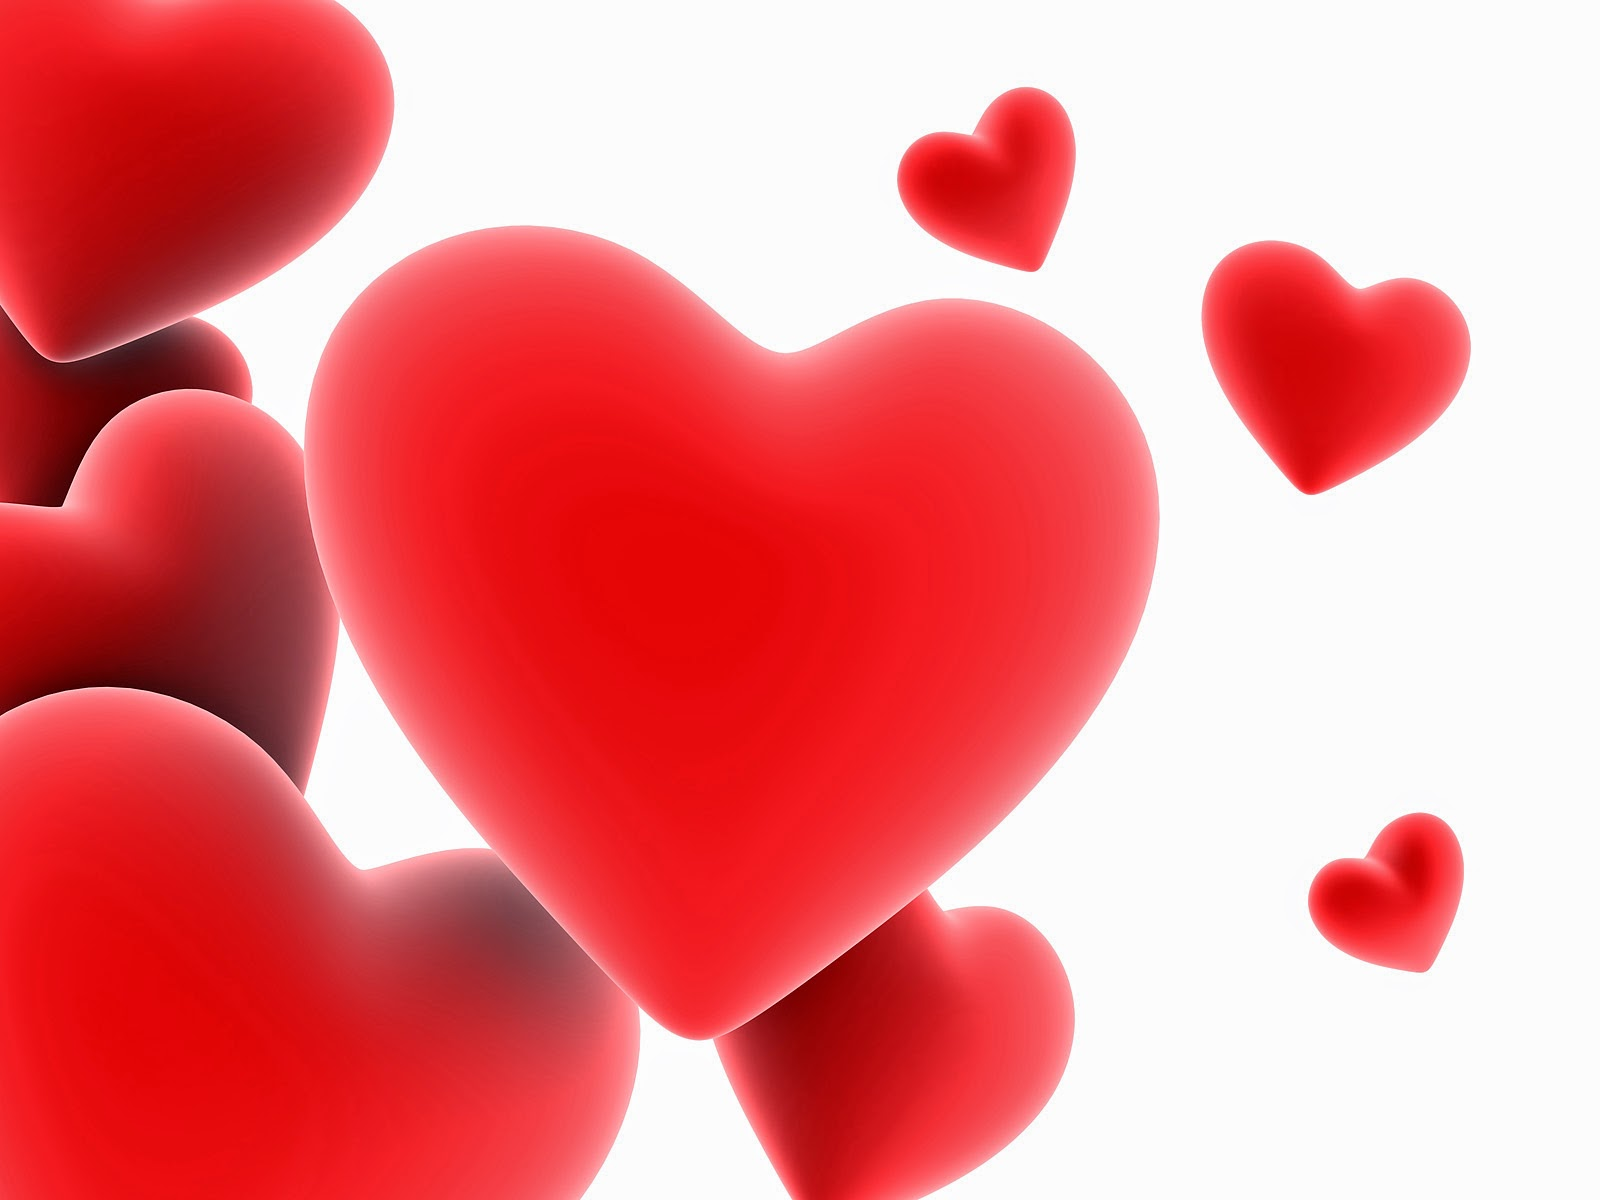 Hd Heart Images - Reverse Search